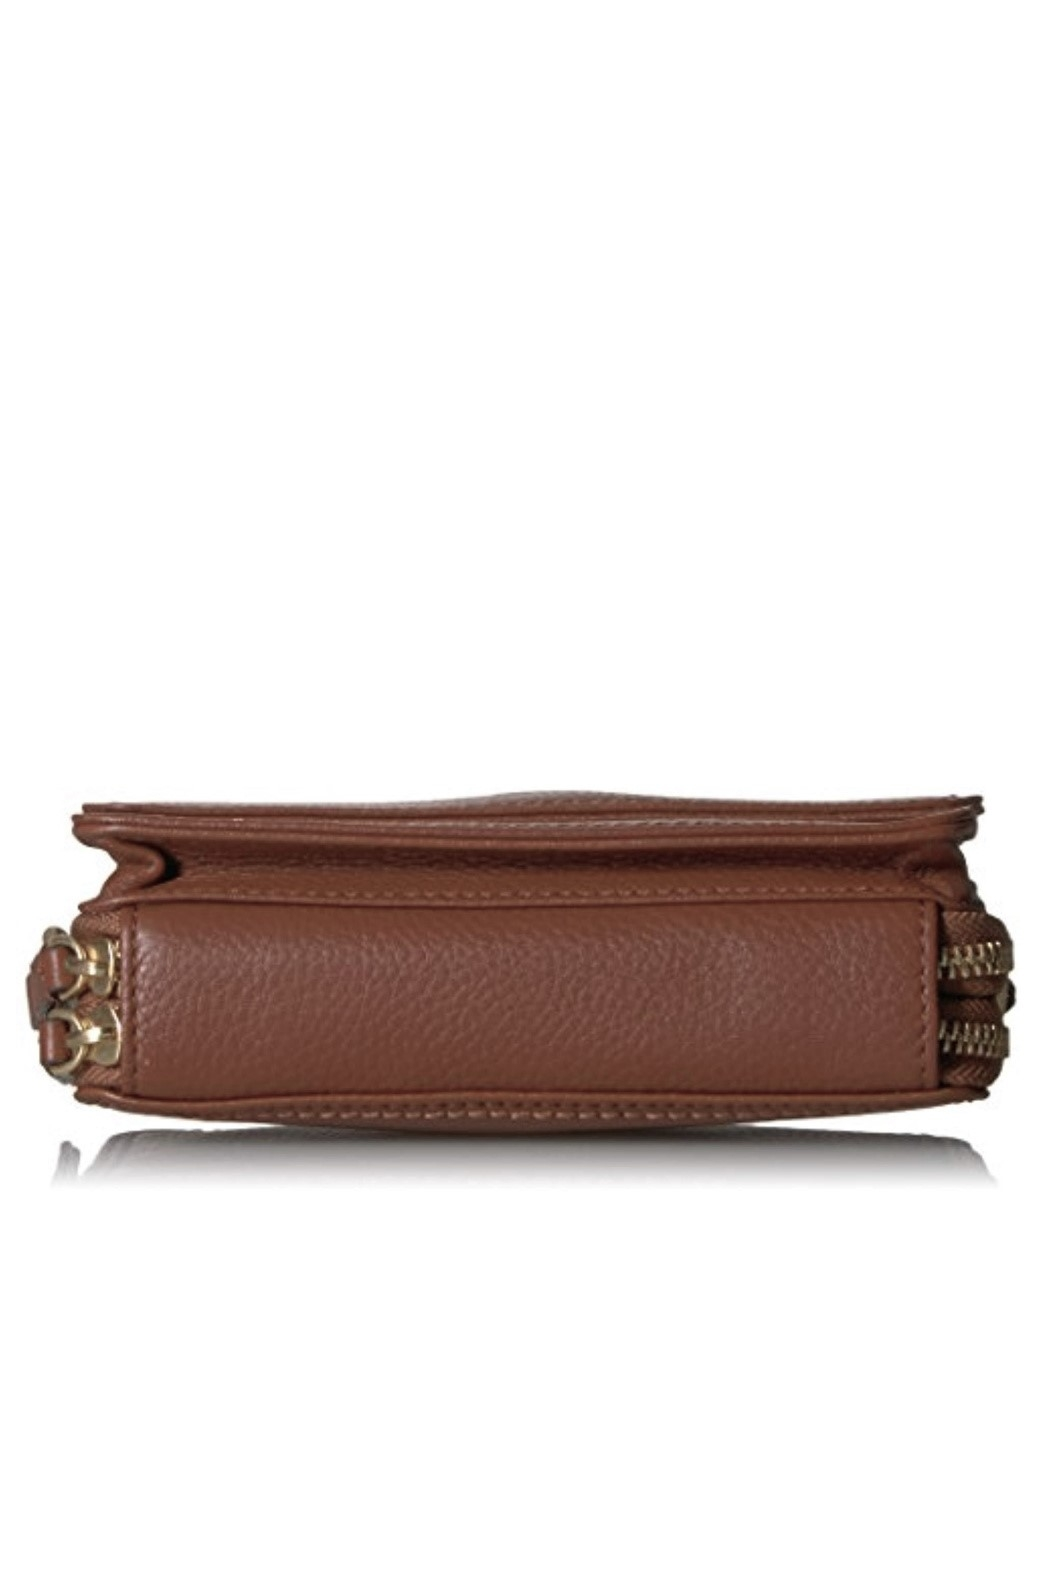 Vera Bradley Mesa Brown Leather Mallory All In One - Side Cropped Image